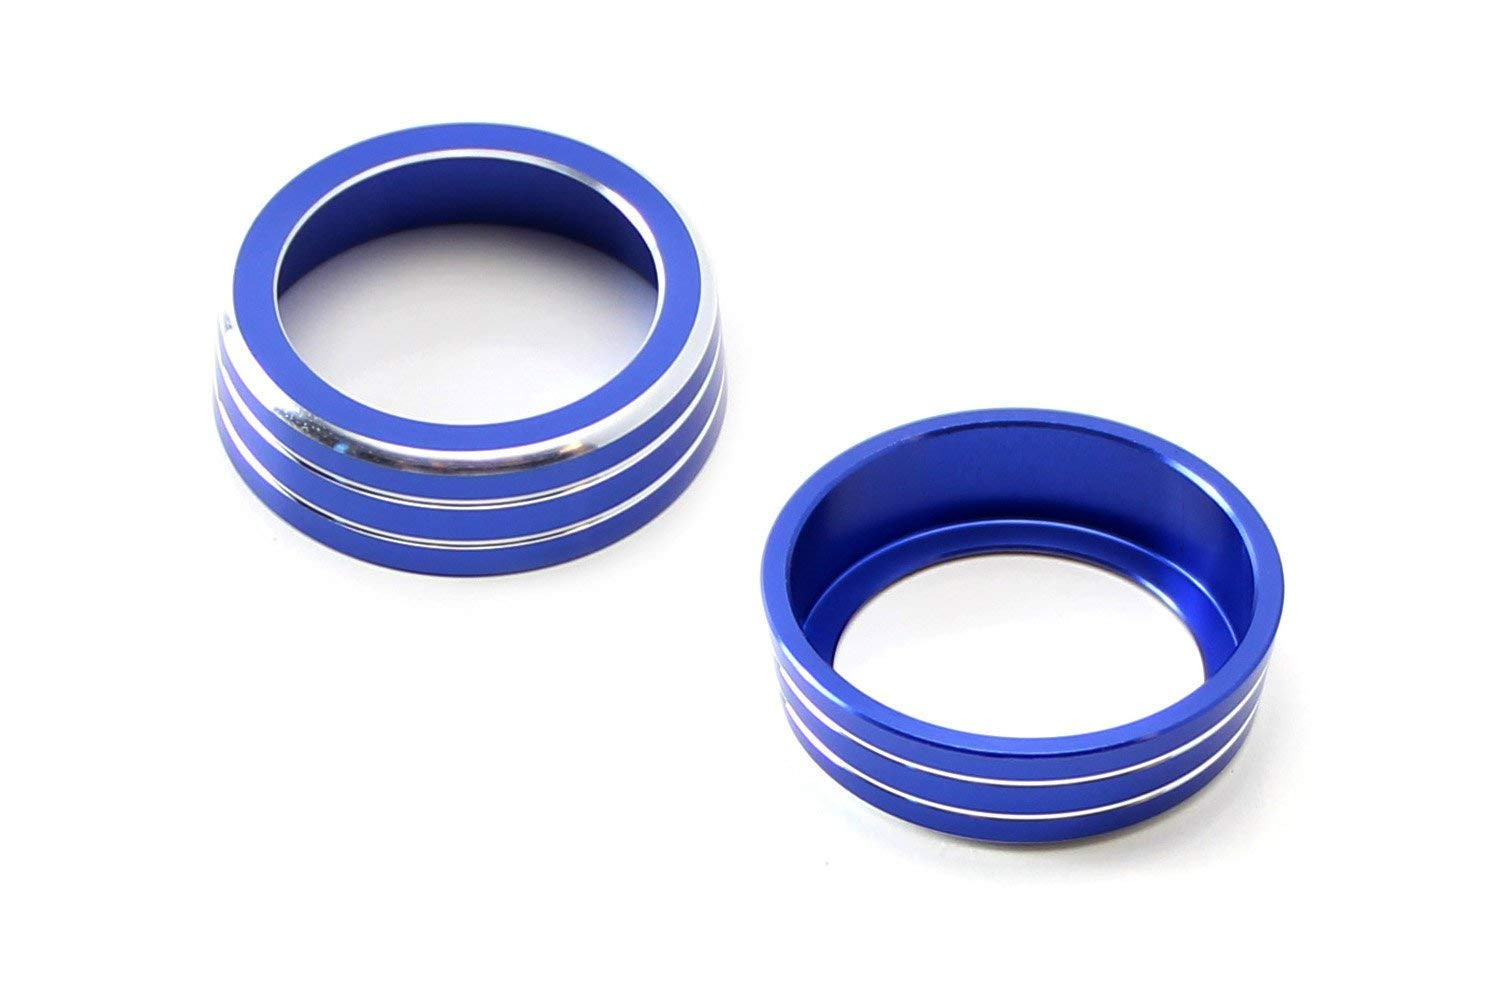 iJDMTOY 2pcs Blue Anodized Aluminum AC Climate Control Ring Knob Covers For 2016-up 10th Gen Honda Civic by iJDMTOY